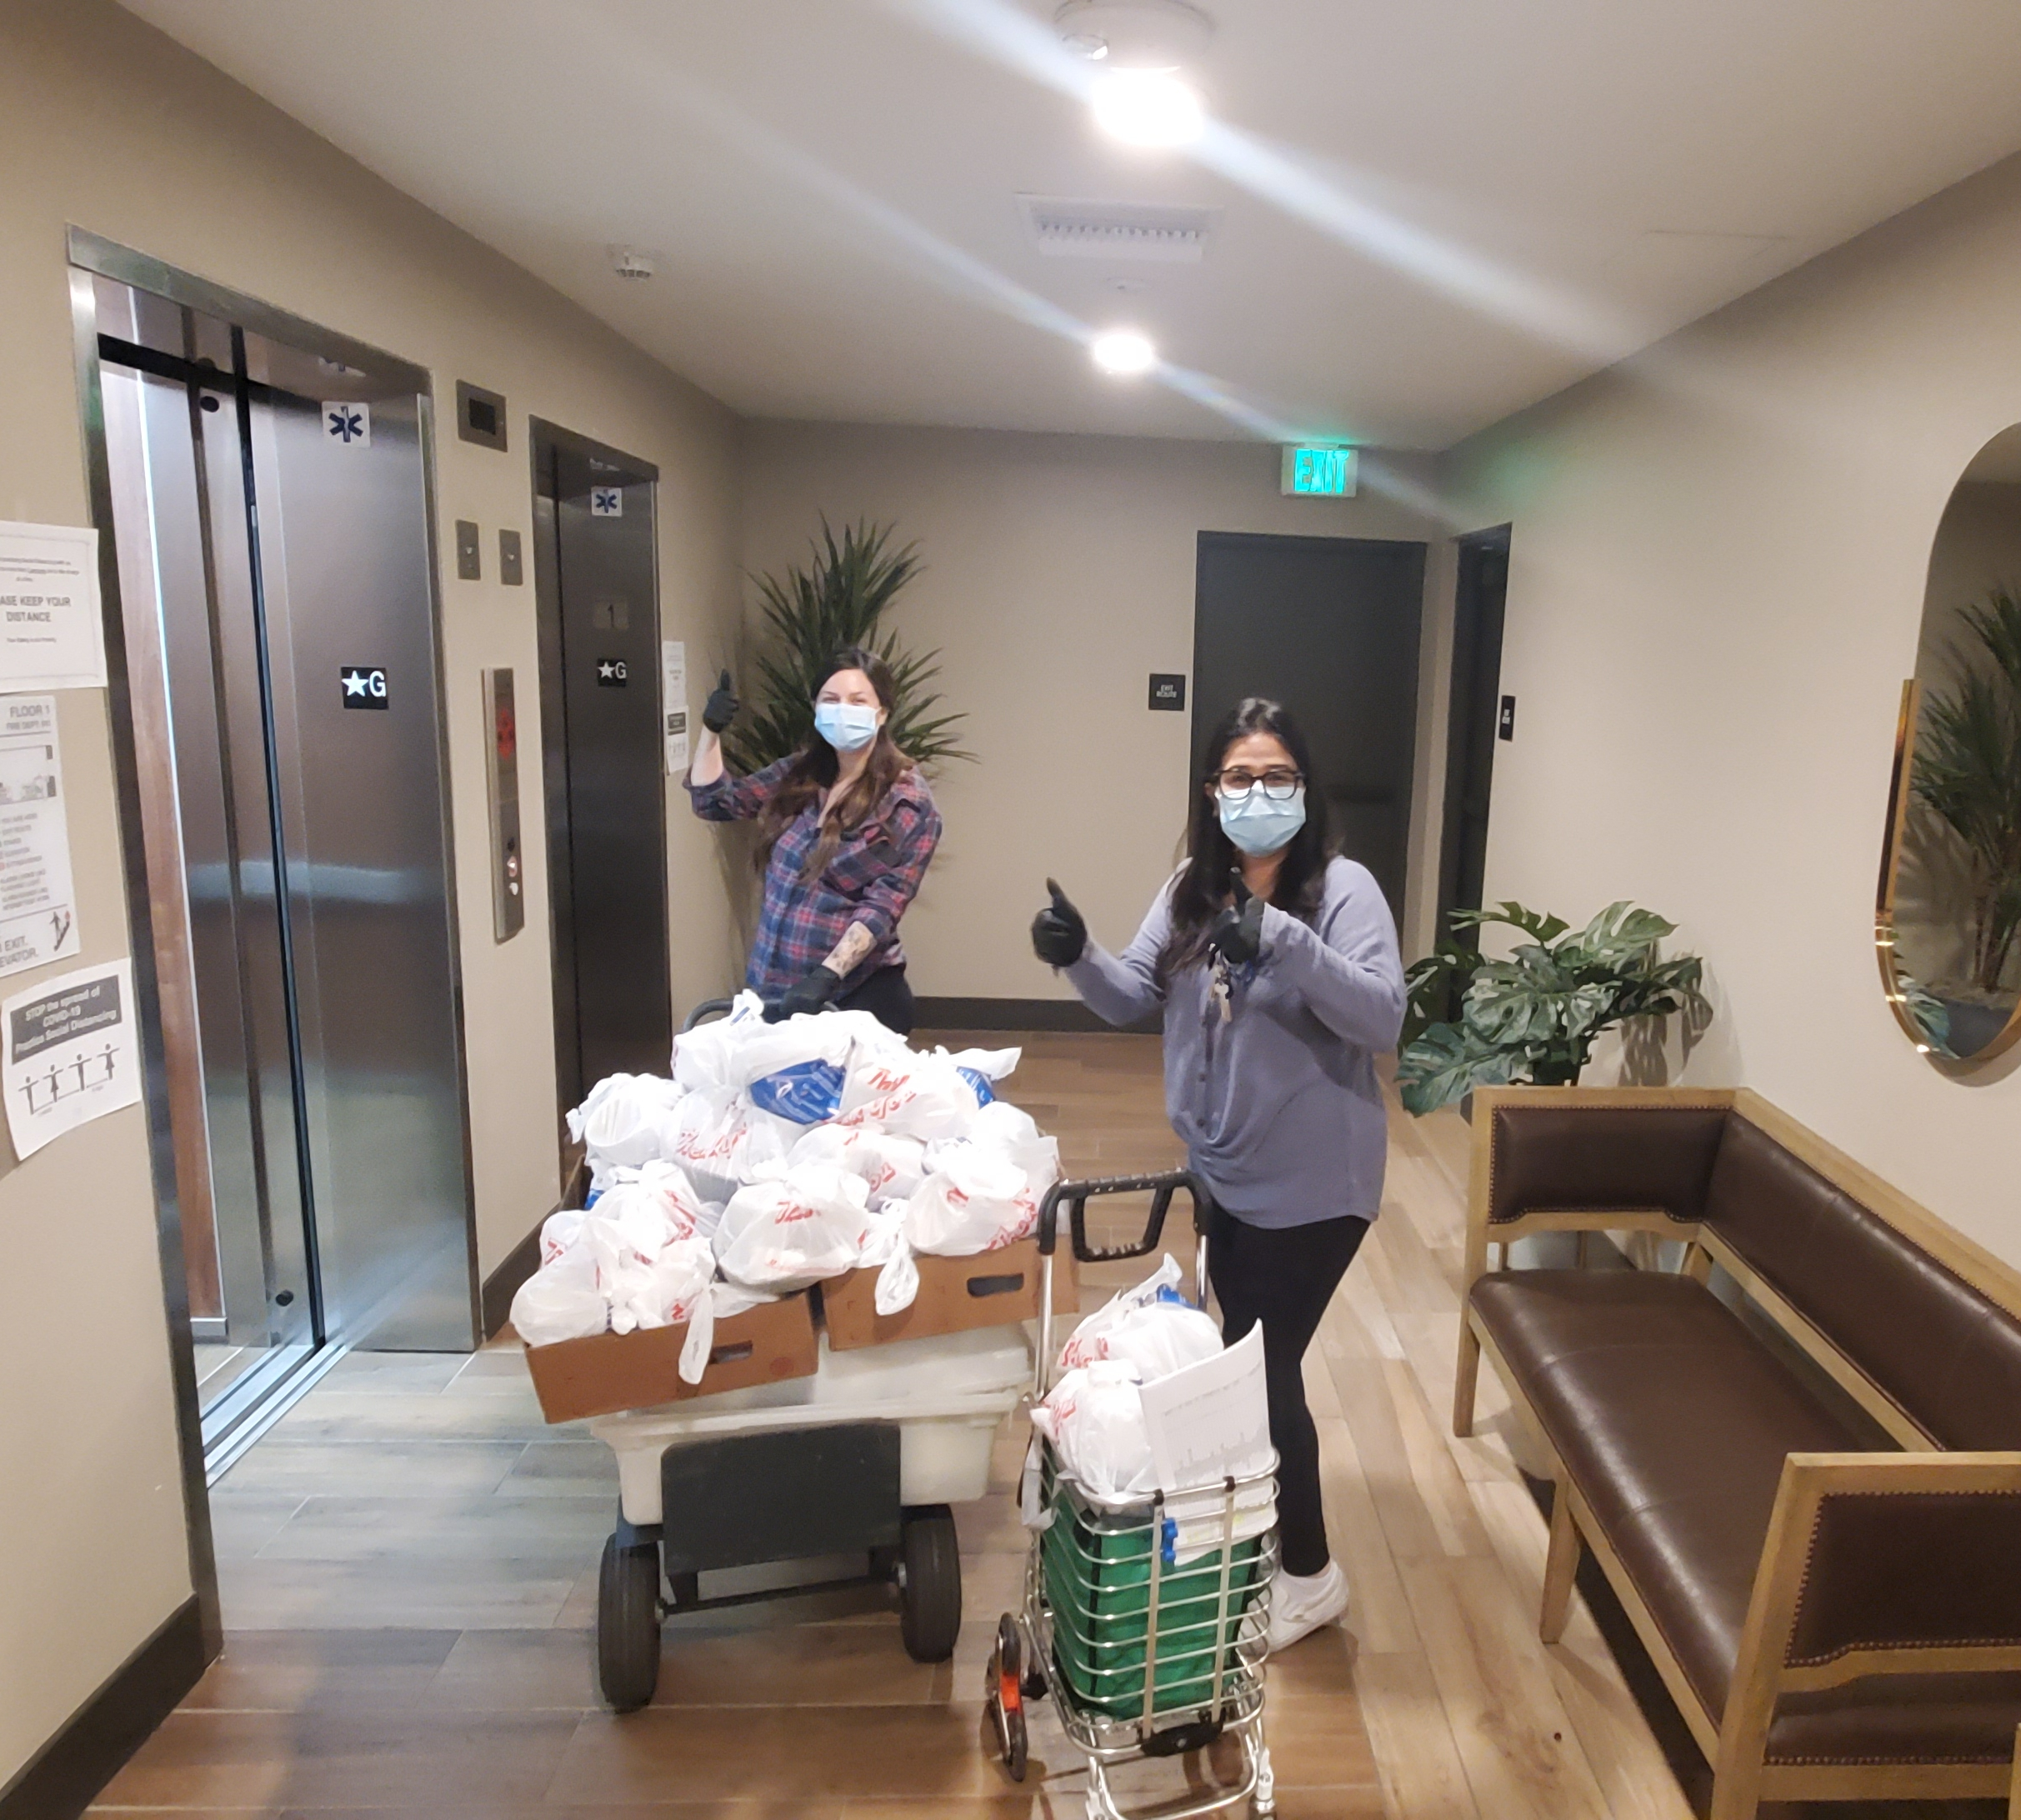 Los Angeles Neighborhood Initiative & LA 7 Restaurant providing meals to Westmoreland Linden Apartments in Koreatown 4-28-2020 #4